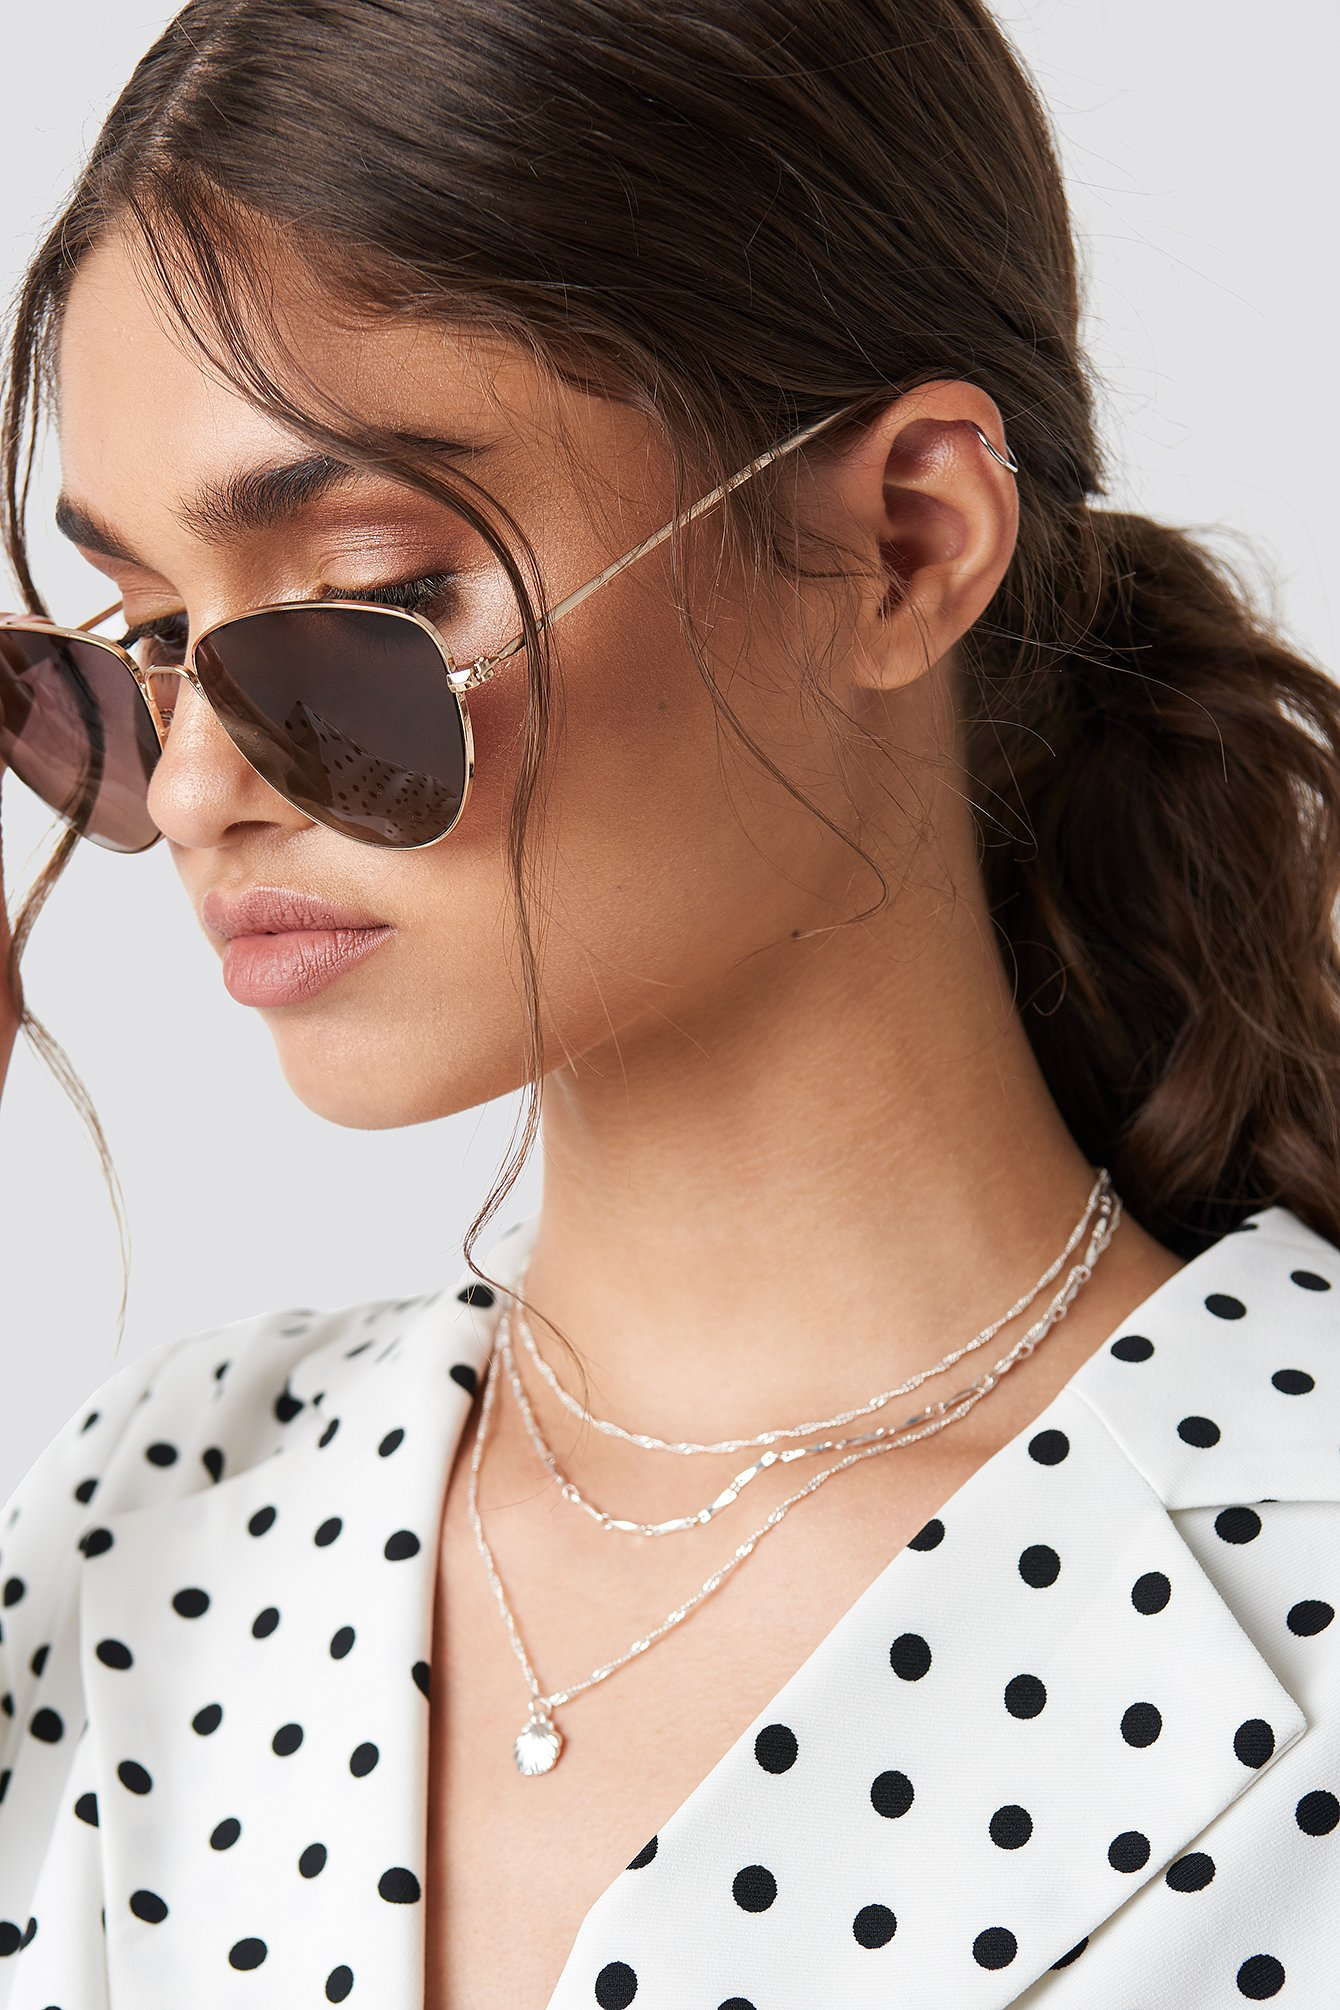 The Round Metal Cat Eye Sunglasses by NA-KD Accessories features a round design, a thin bridge on the nose and thin metal frames.